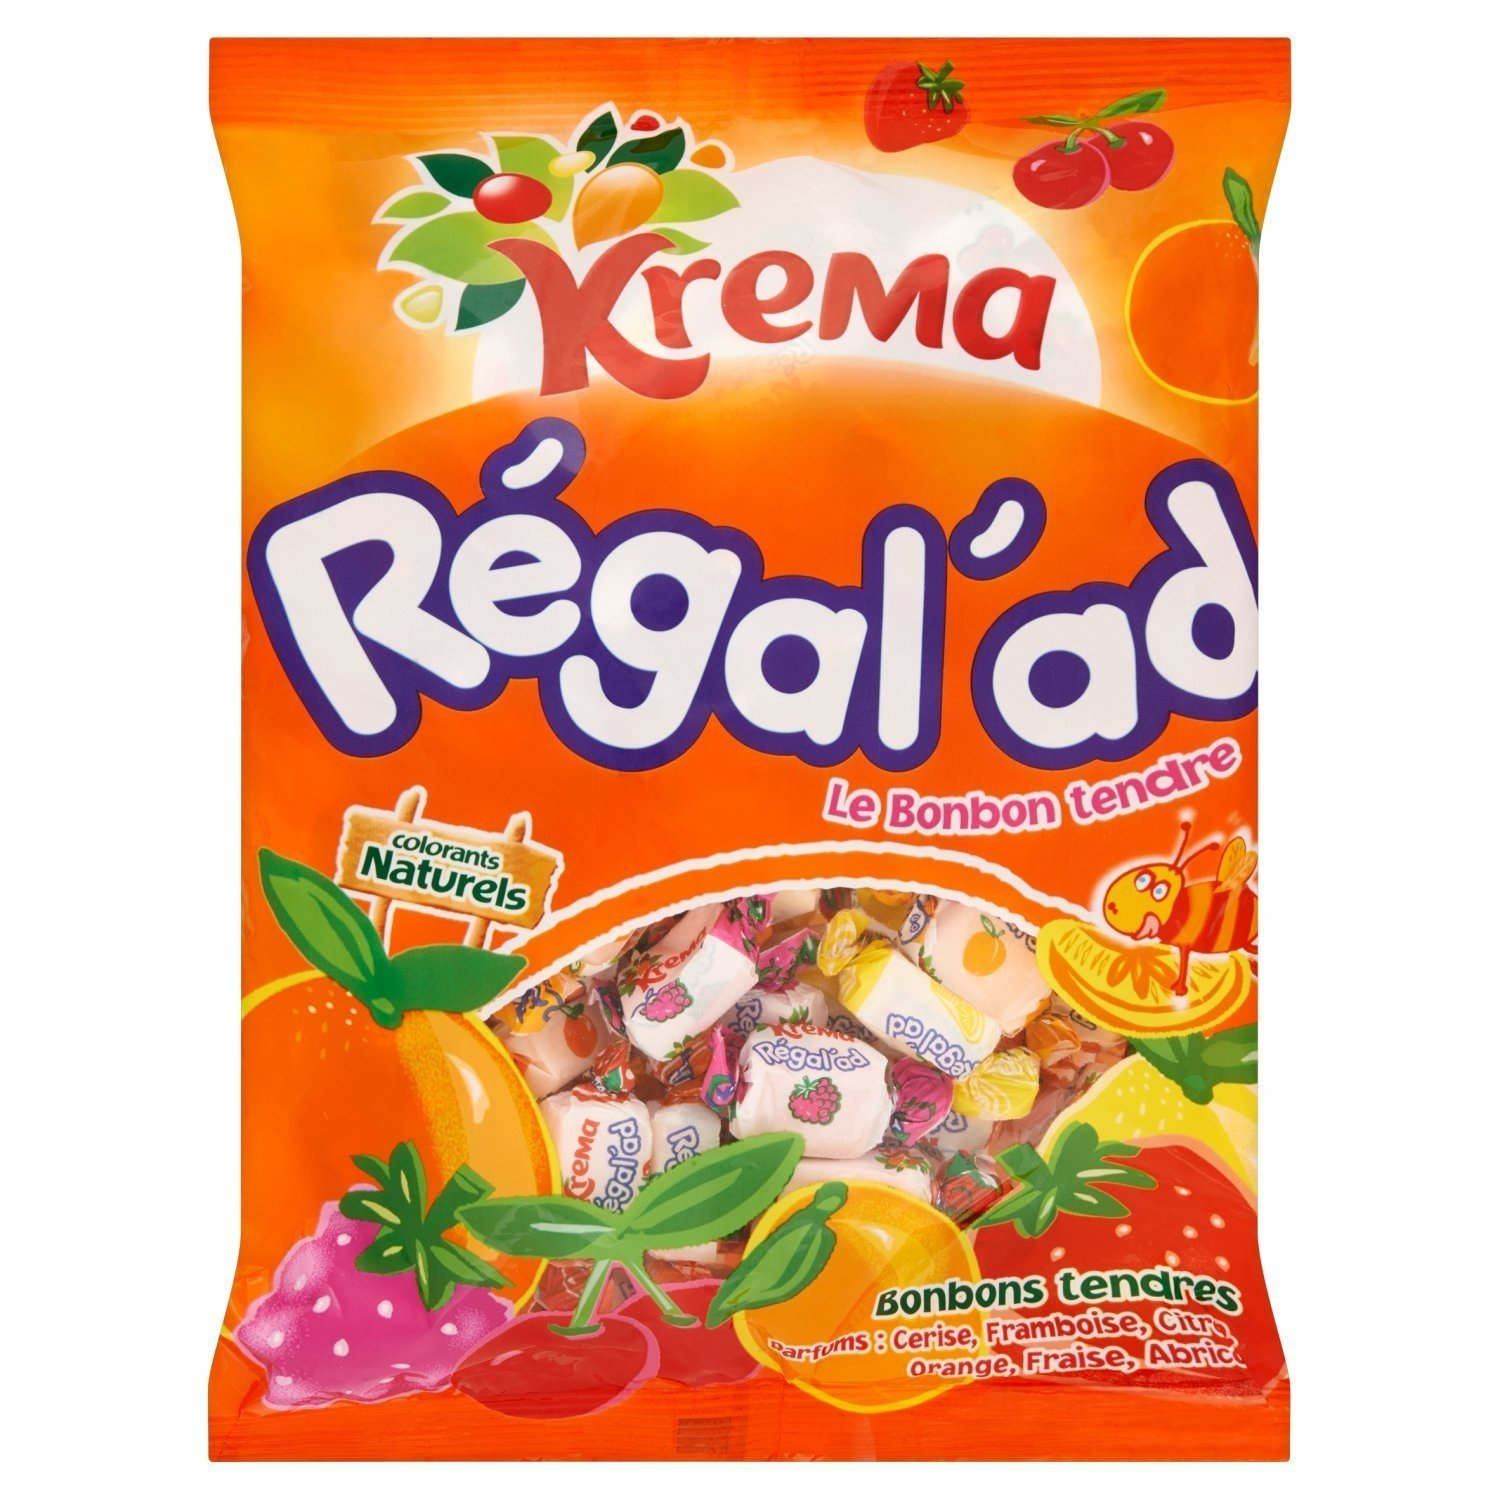 Krema Regal'ad Fruit Chewy Candy From France 150 Gr (8 PACK) by Krema